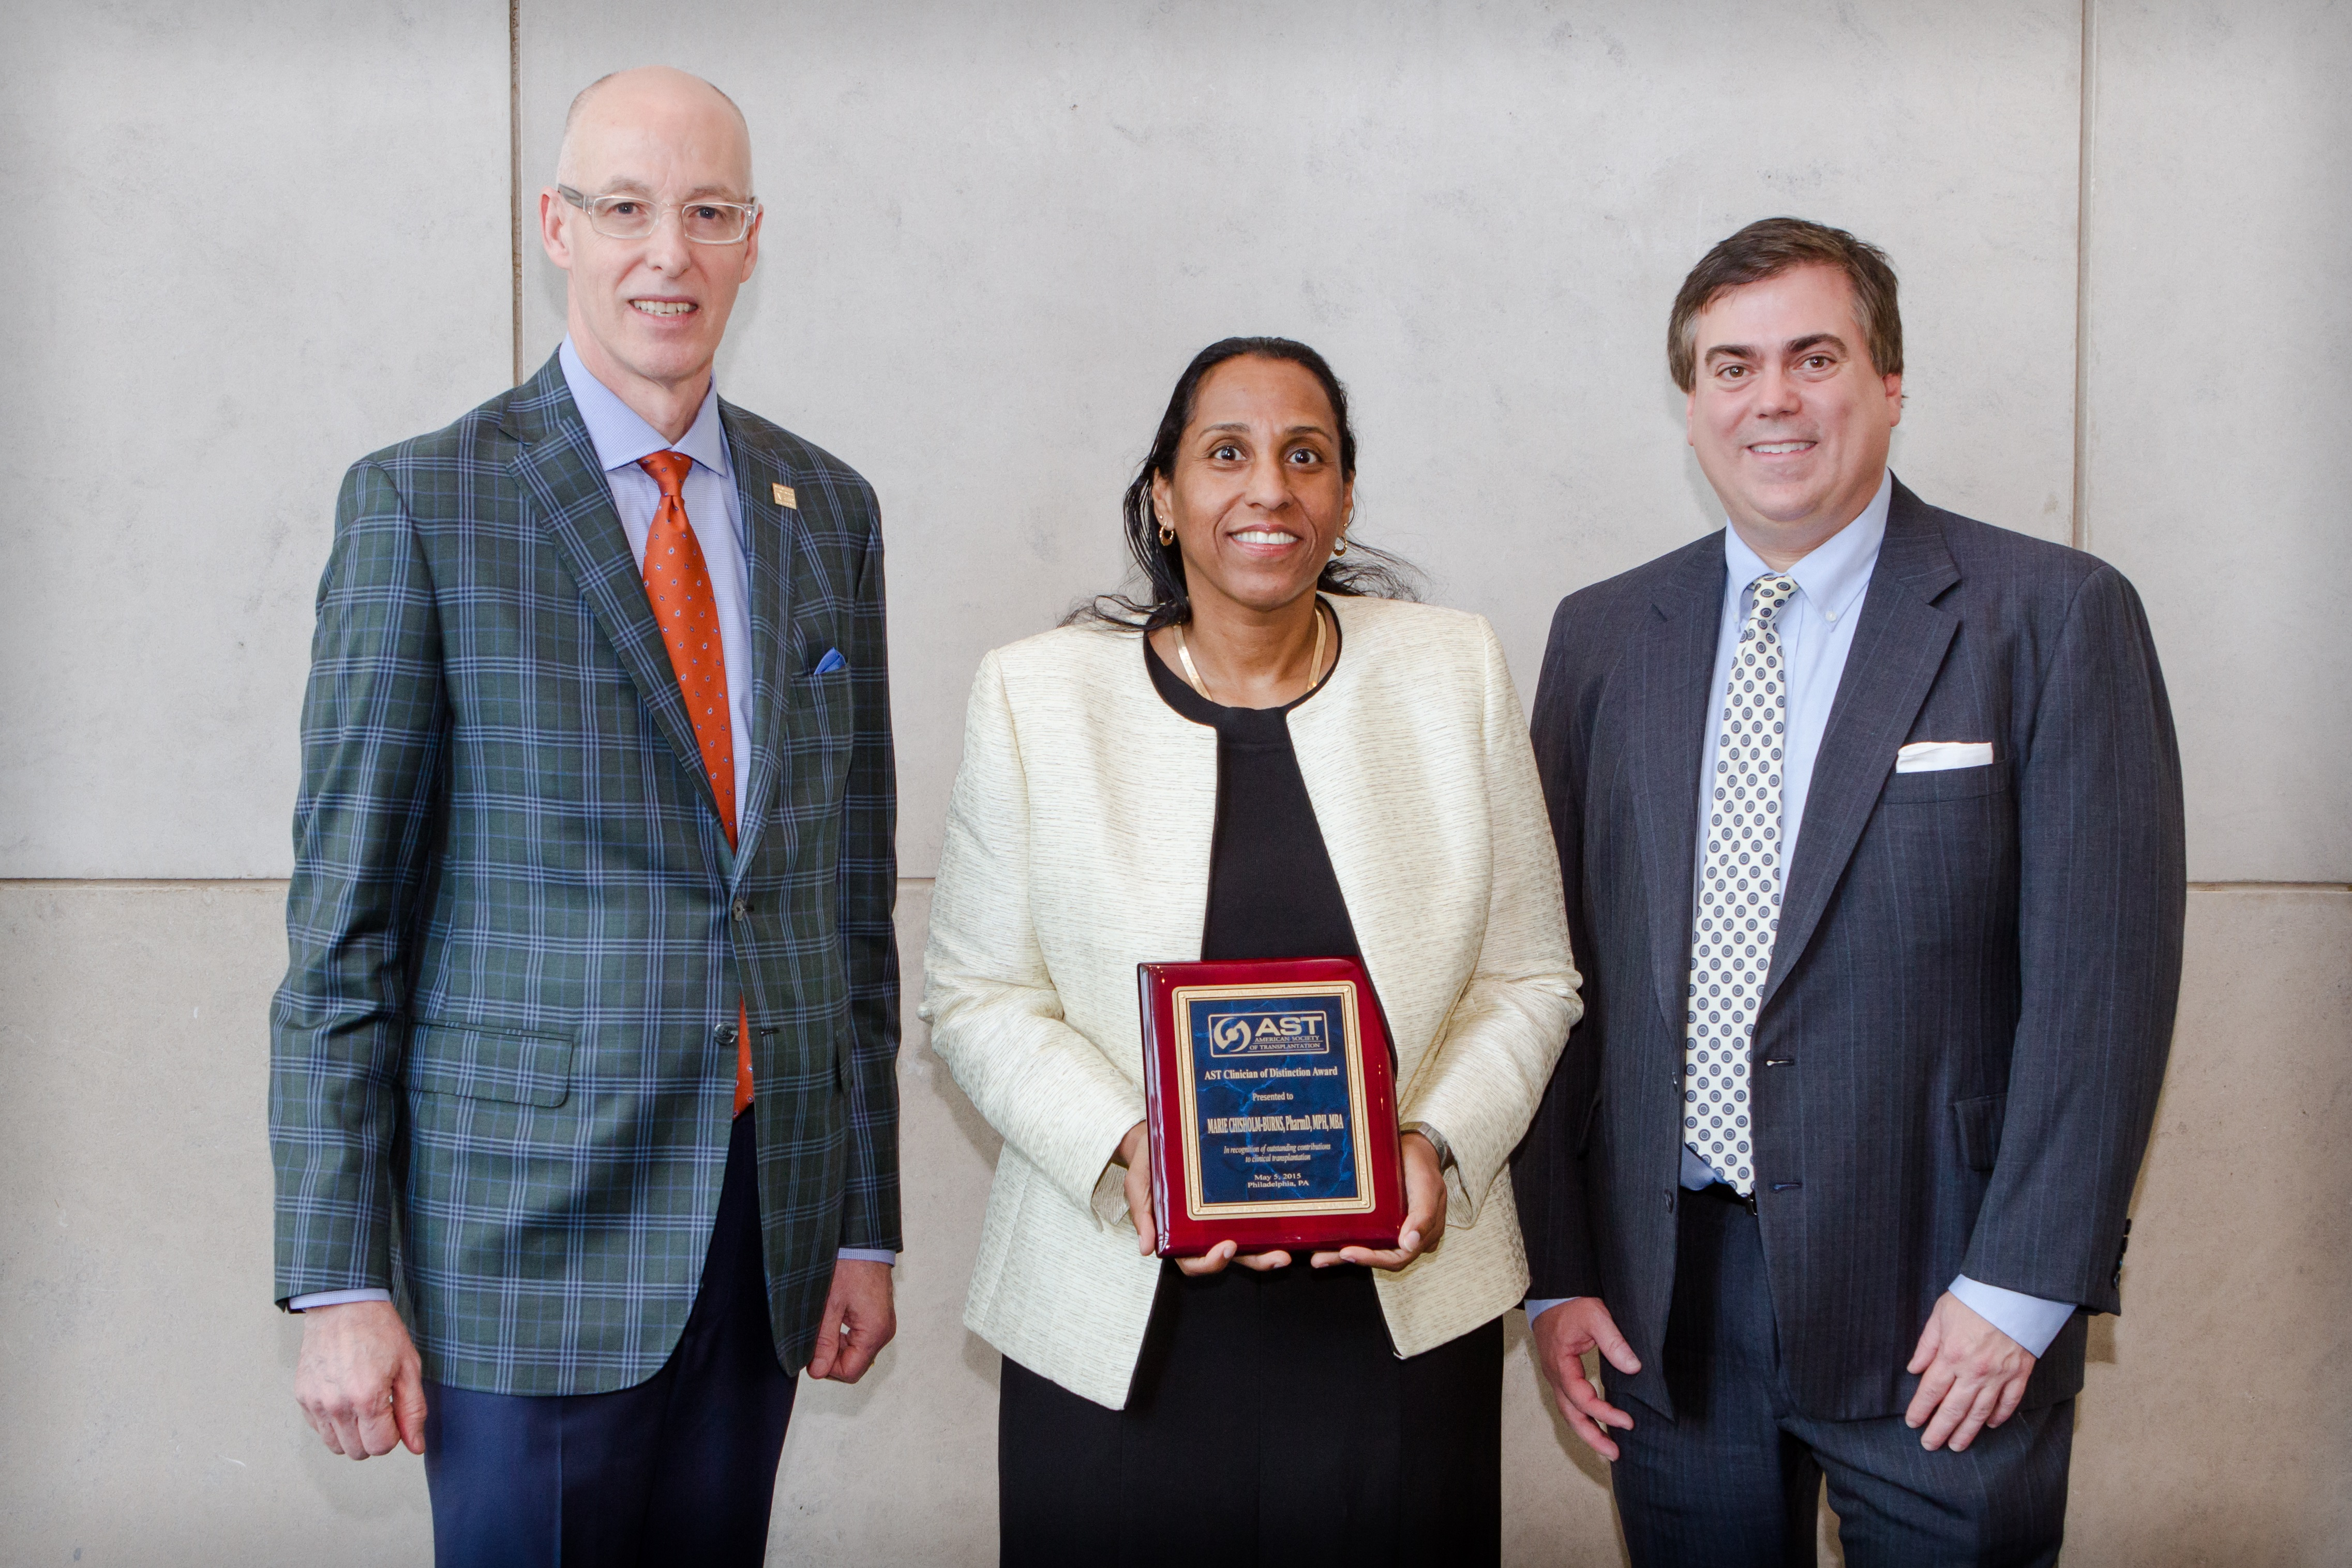 Dr. Marie Chisholm-Burns, dean of the College of Pharmacy at UTHSC, center, received the Clinician of Distinction Award from the American Society of Transplantation (AST). With her are Kenneth Newell, AST immediate past president, and James Allan, AST president.